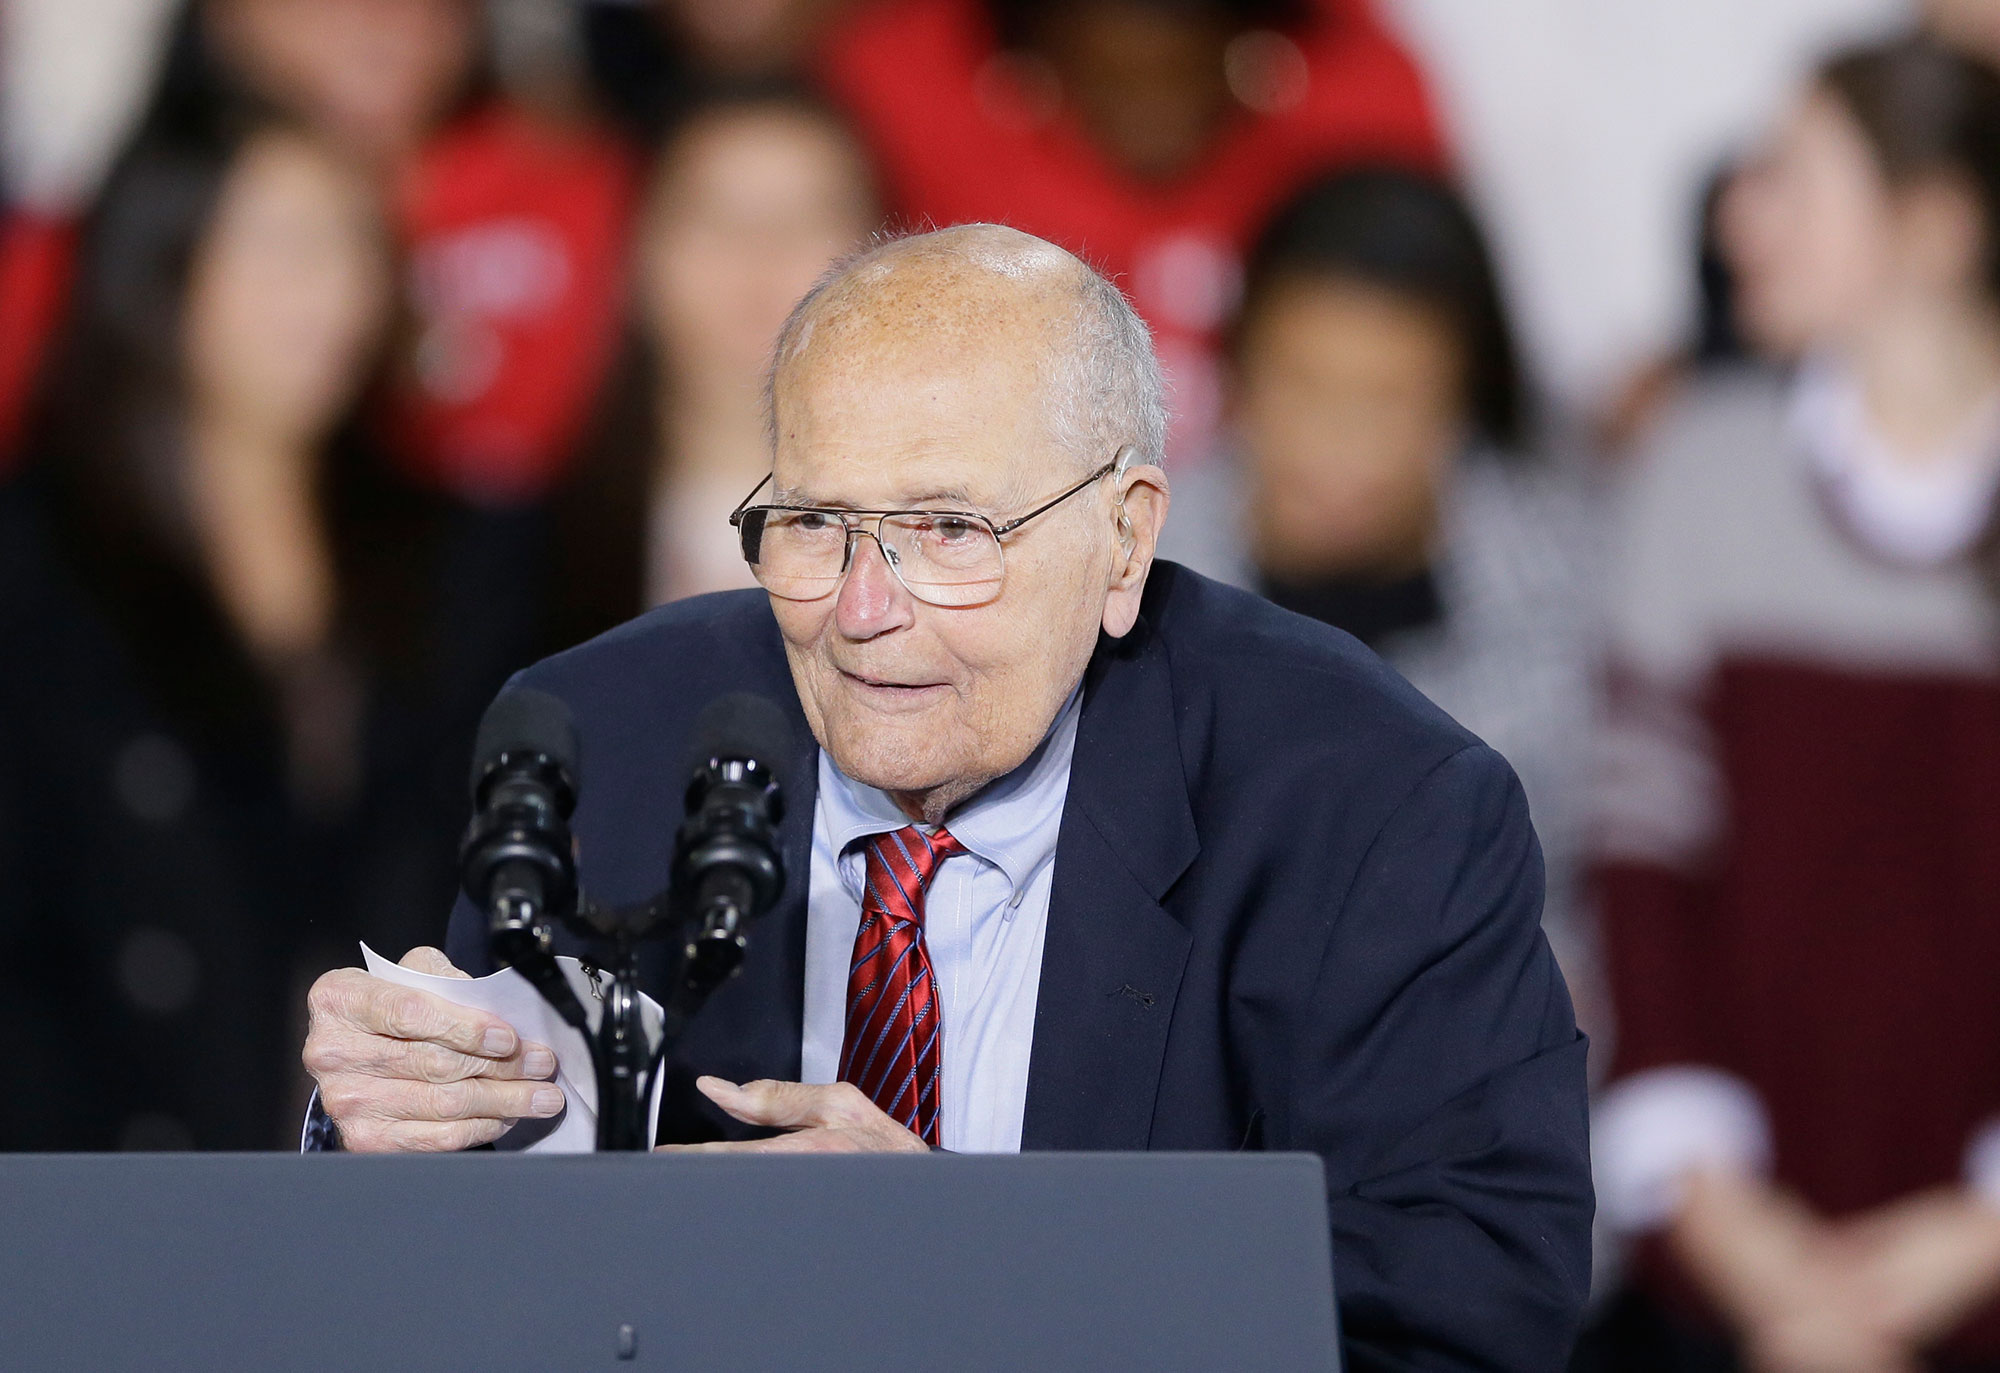 "<div class=""meta image-caption""><div class=""origin-logo origin-image none""><span>none</span></div><span class=""caption-text"">Former U.S. Rep. John Dingell, the longest-serving member of Congress in American history, died Feb. 7, 2019, at age 92. (Carlos Osorio/AP Photo)</span></div>"